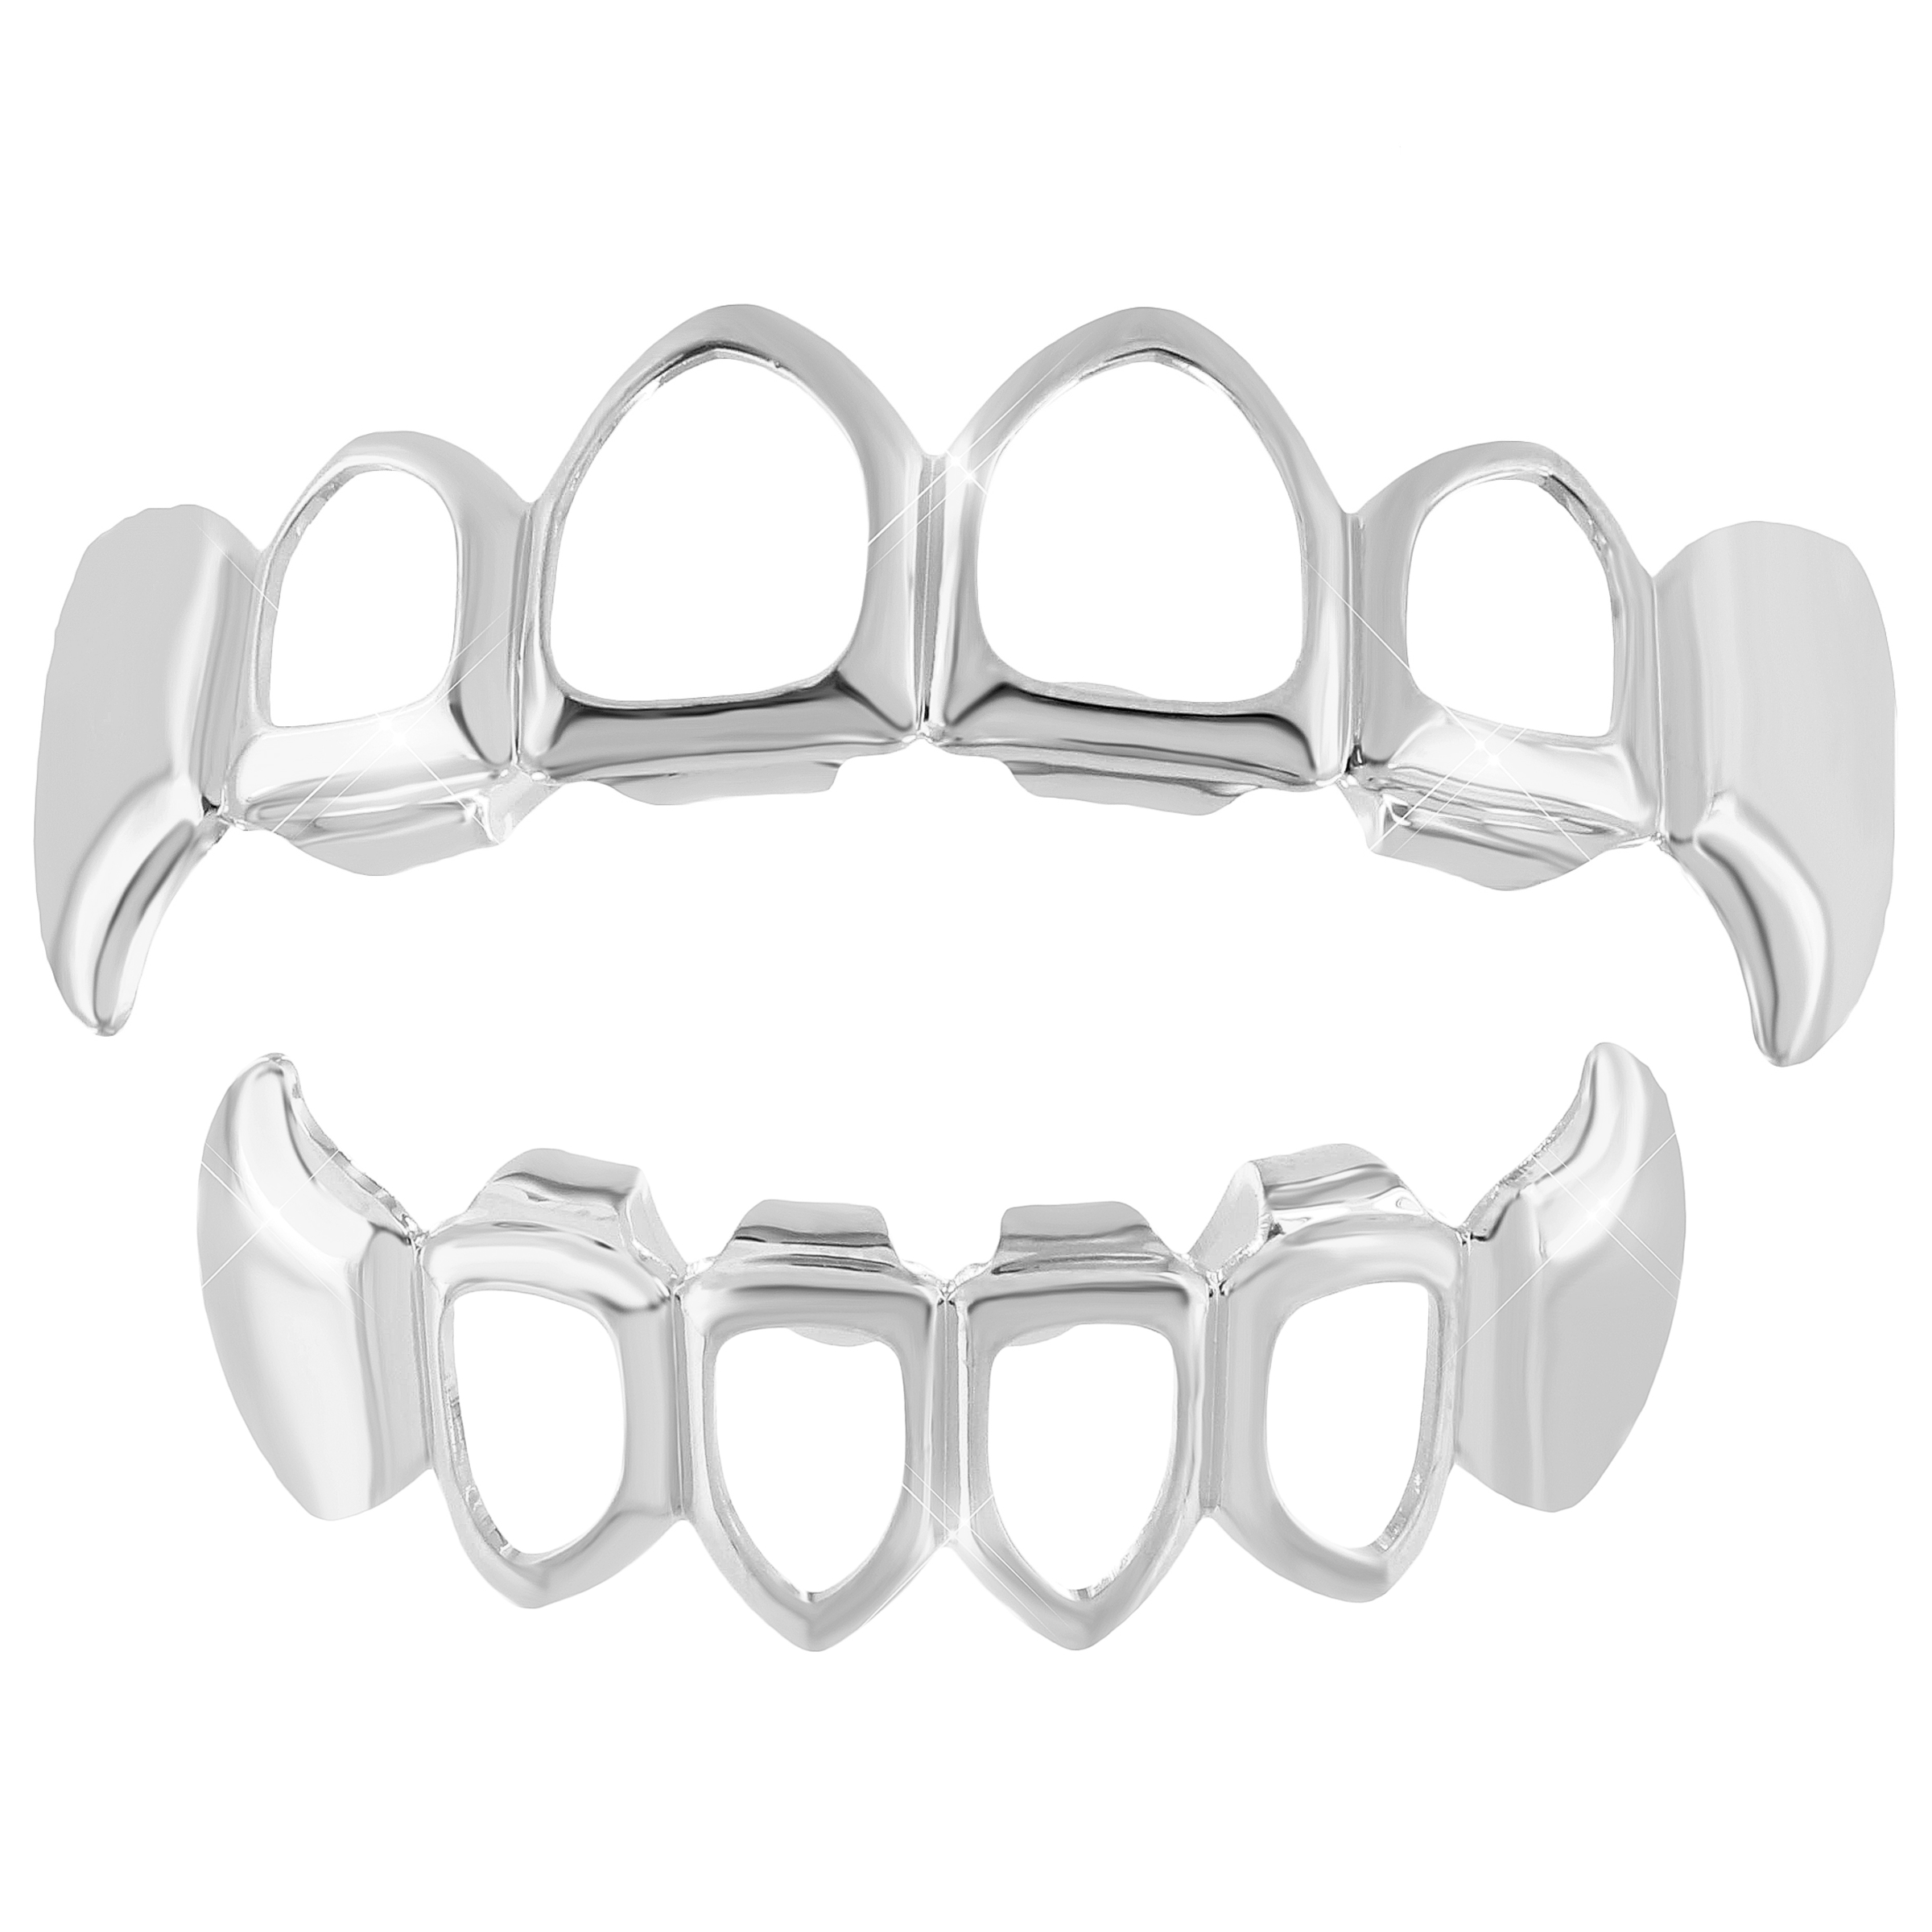 master of bling 14k white gold plate open face top bottom grillz Pickup Canopy Window master of bling 14k white gold plate open face top bottom grillz set tooth caps custom fit walmart